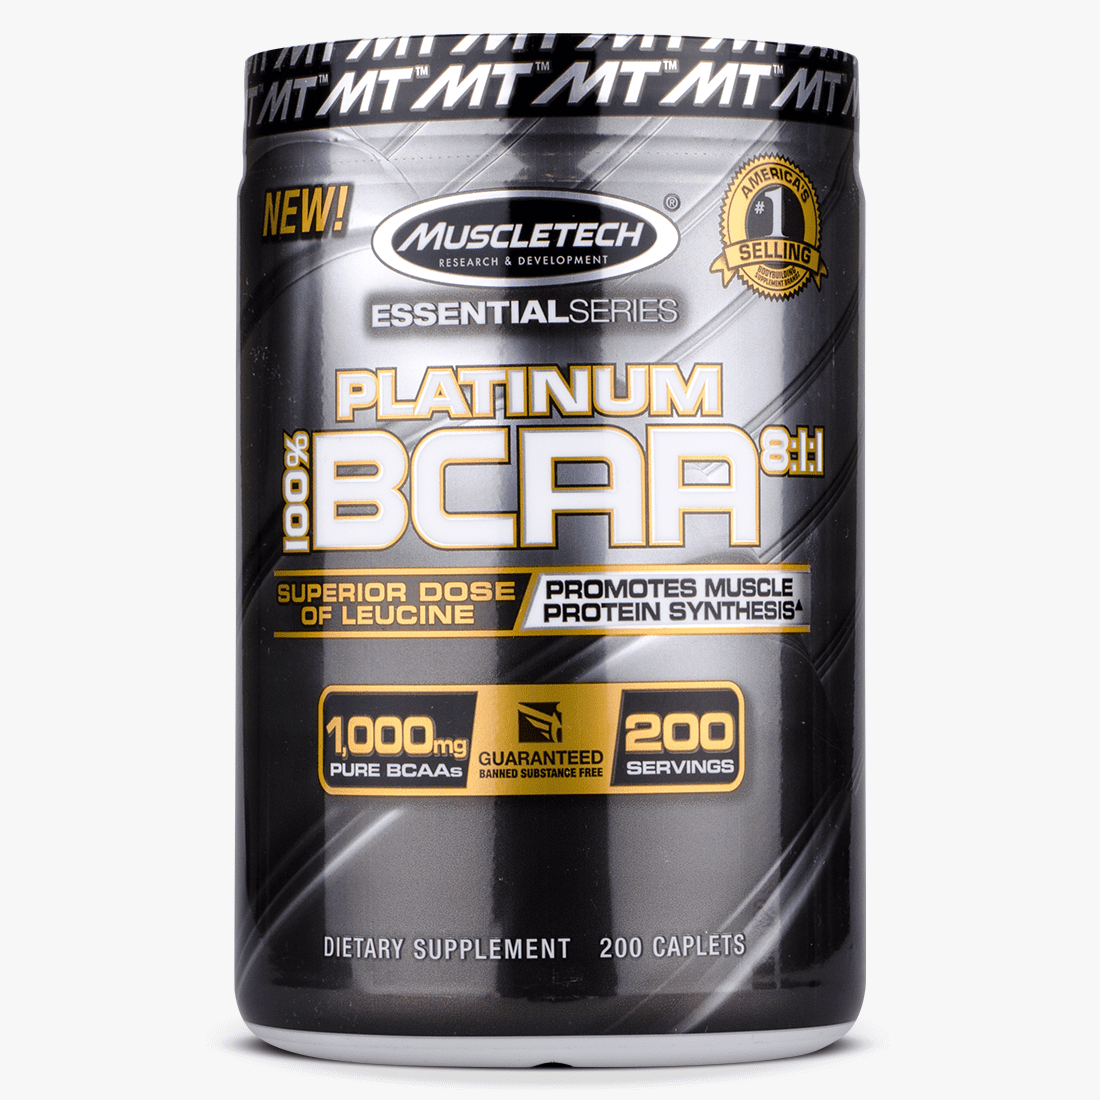 MuscleTech BCAA 8:1:1 Review – Is It Really All It's Cracked Up To Be?